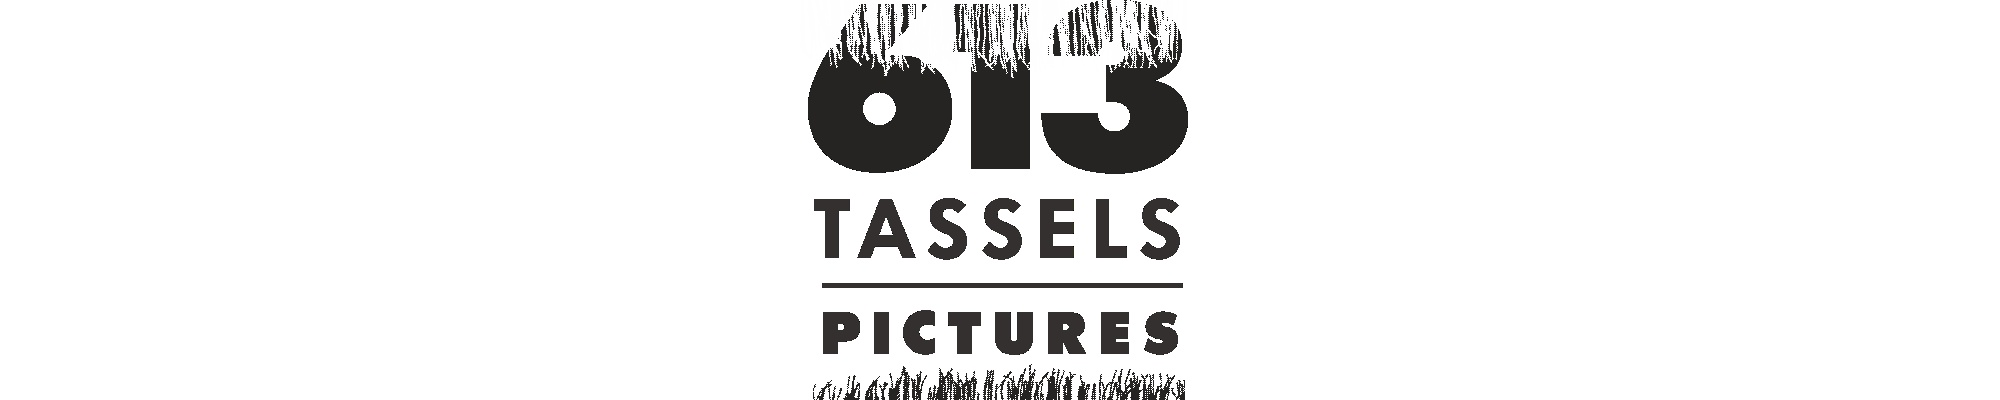 613tasselspicture Cover